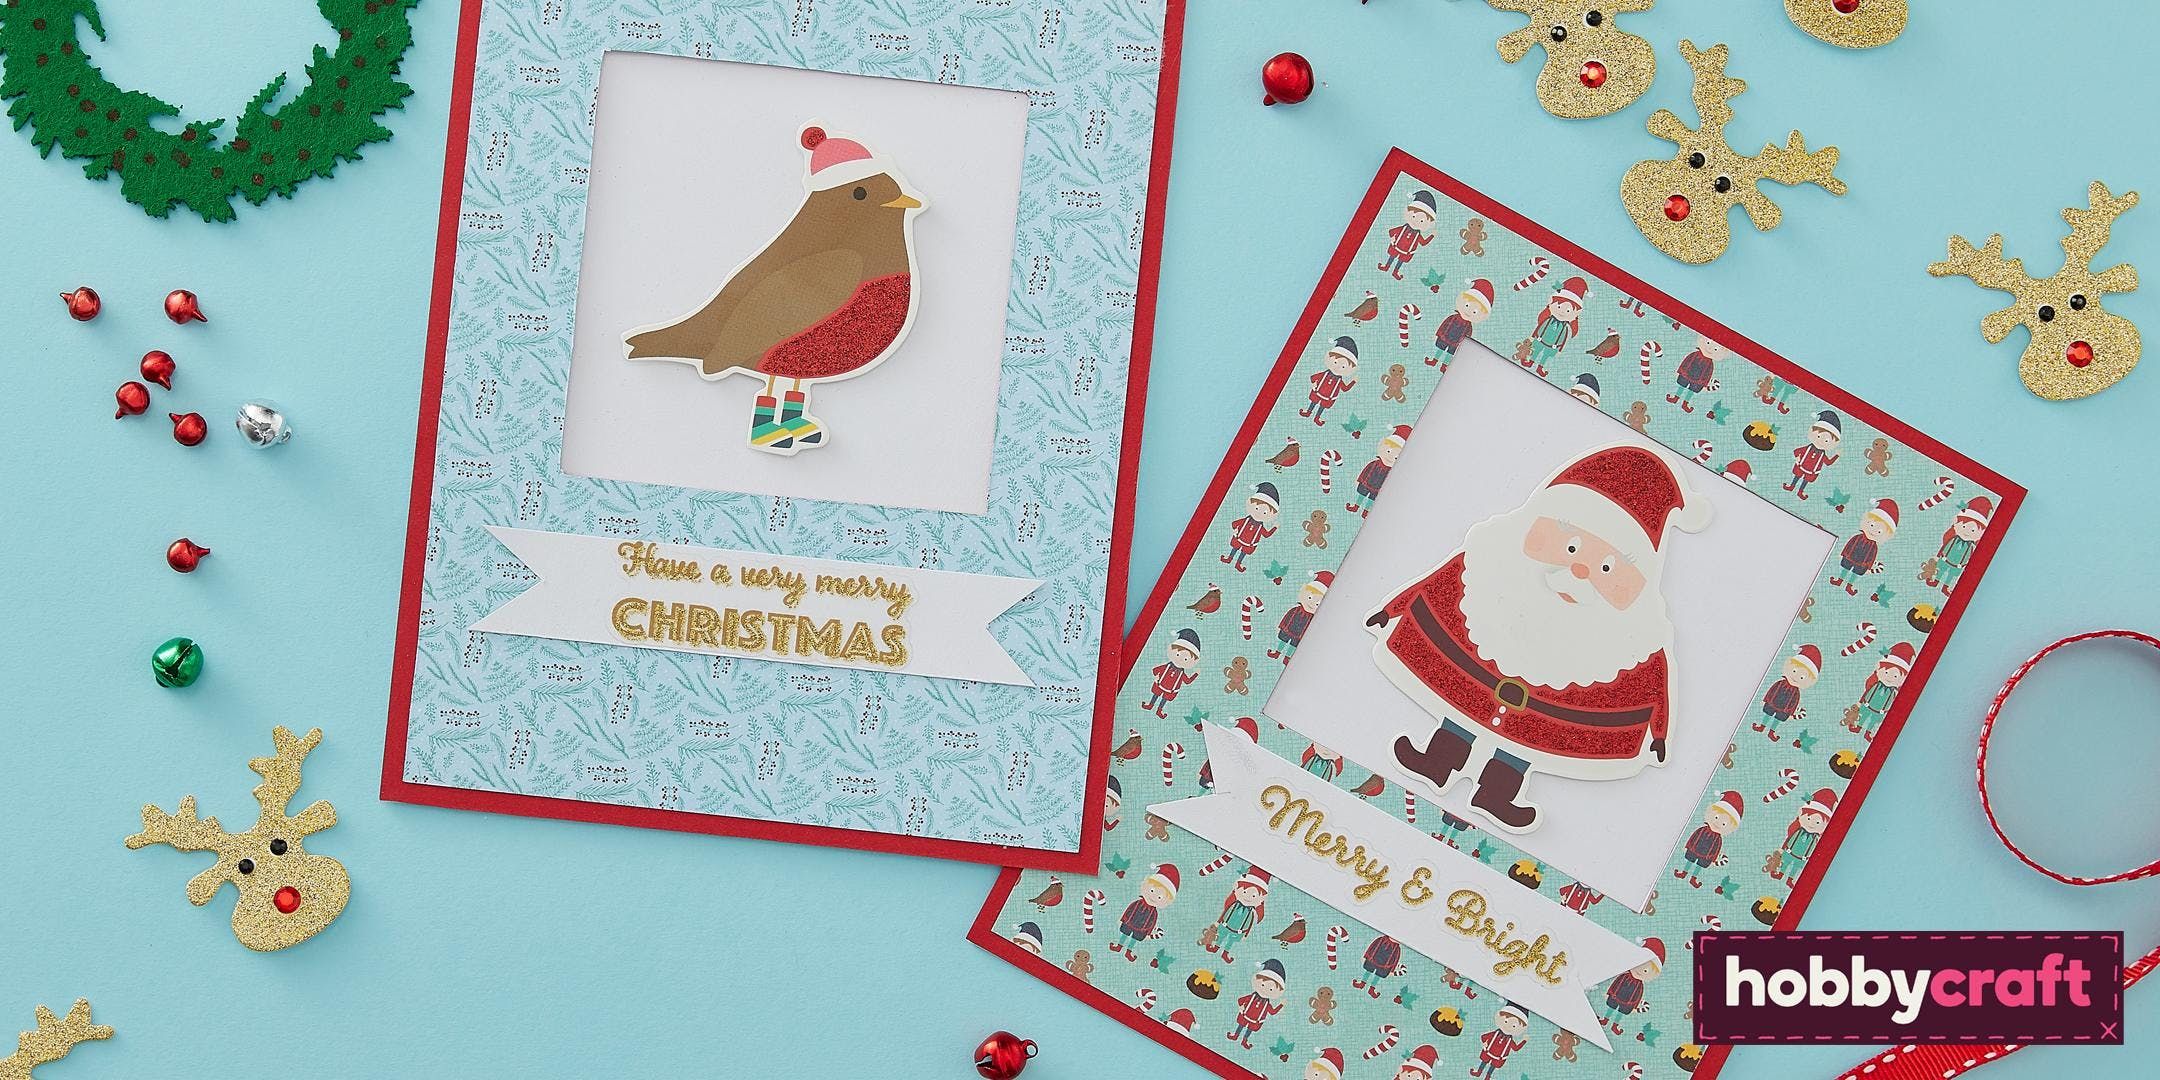 Christmas Papercraft Live: Card Making with A Holly Jolly Christmas